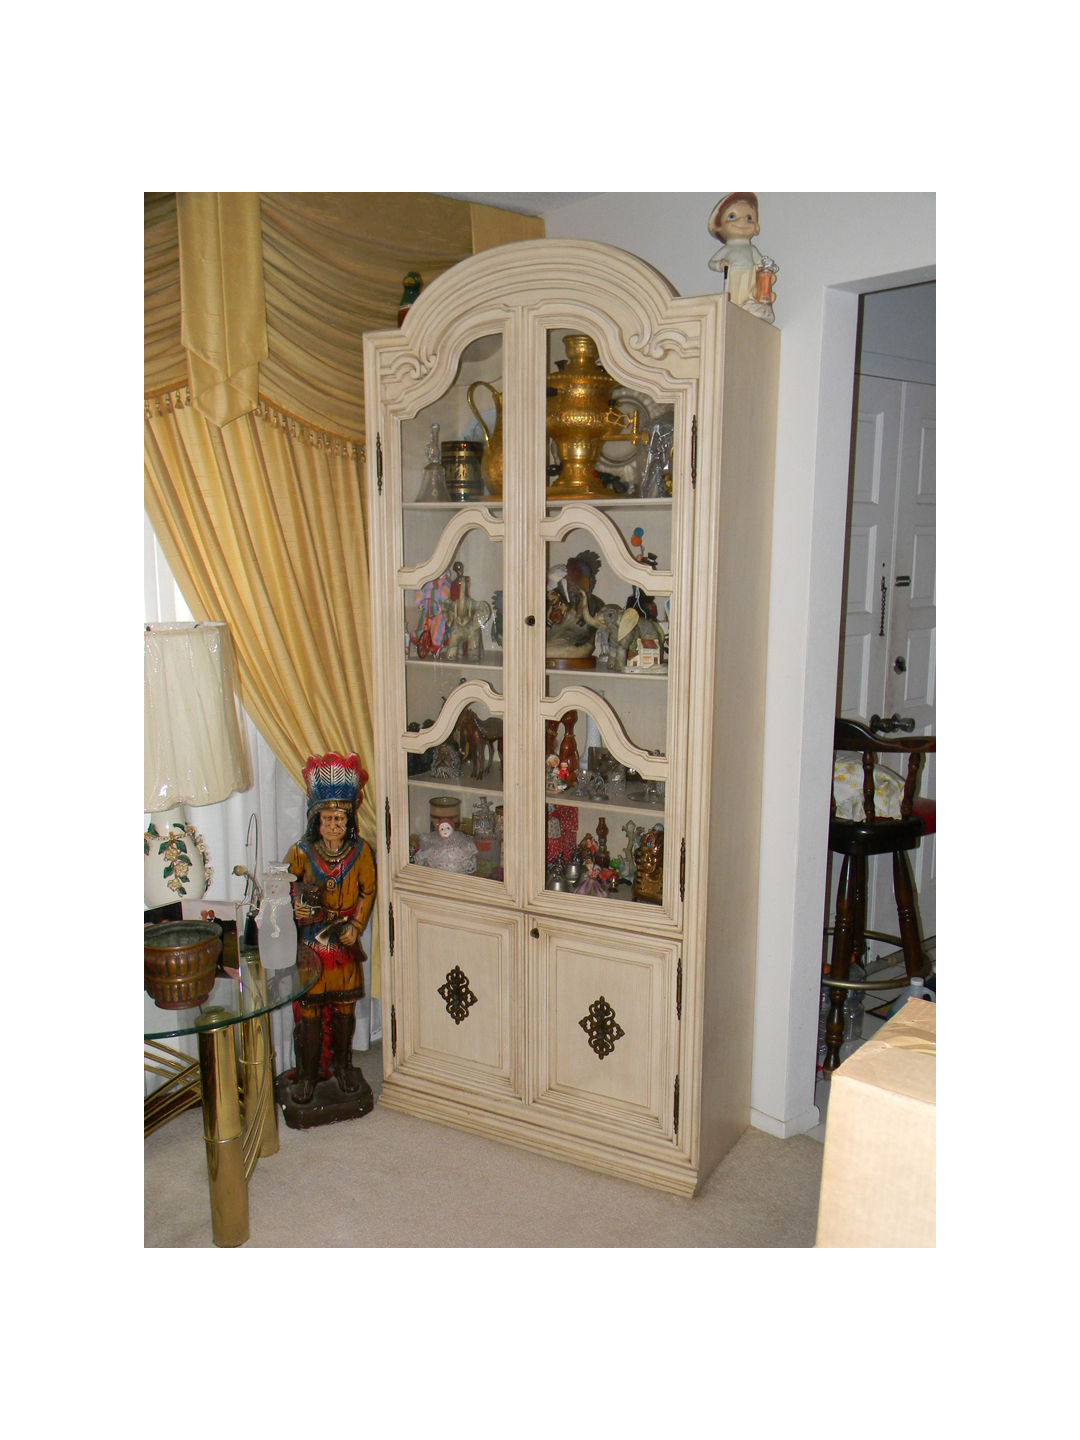 Designer Antique White China Cabinet - Orange County Auctions: orangecountyauctions.weebly.com/store/p12/Designer_Antique_White...